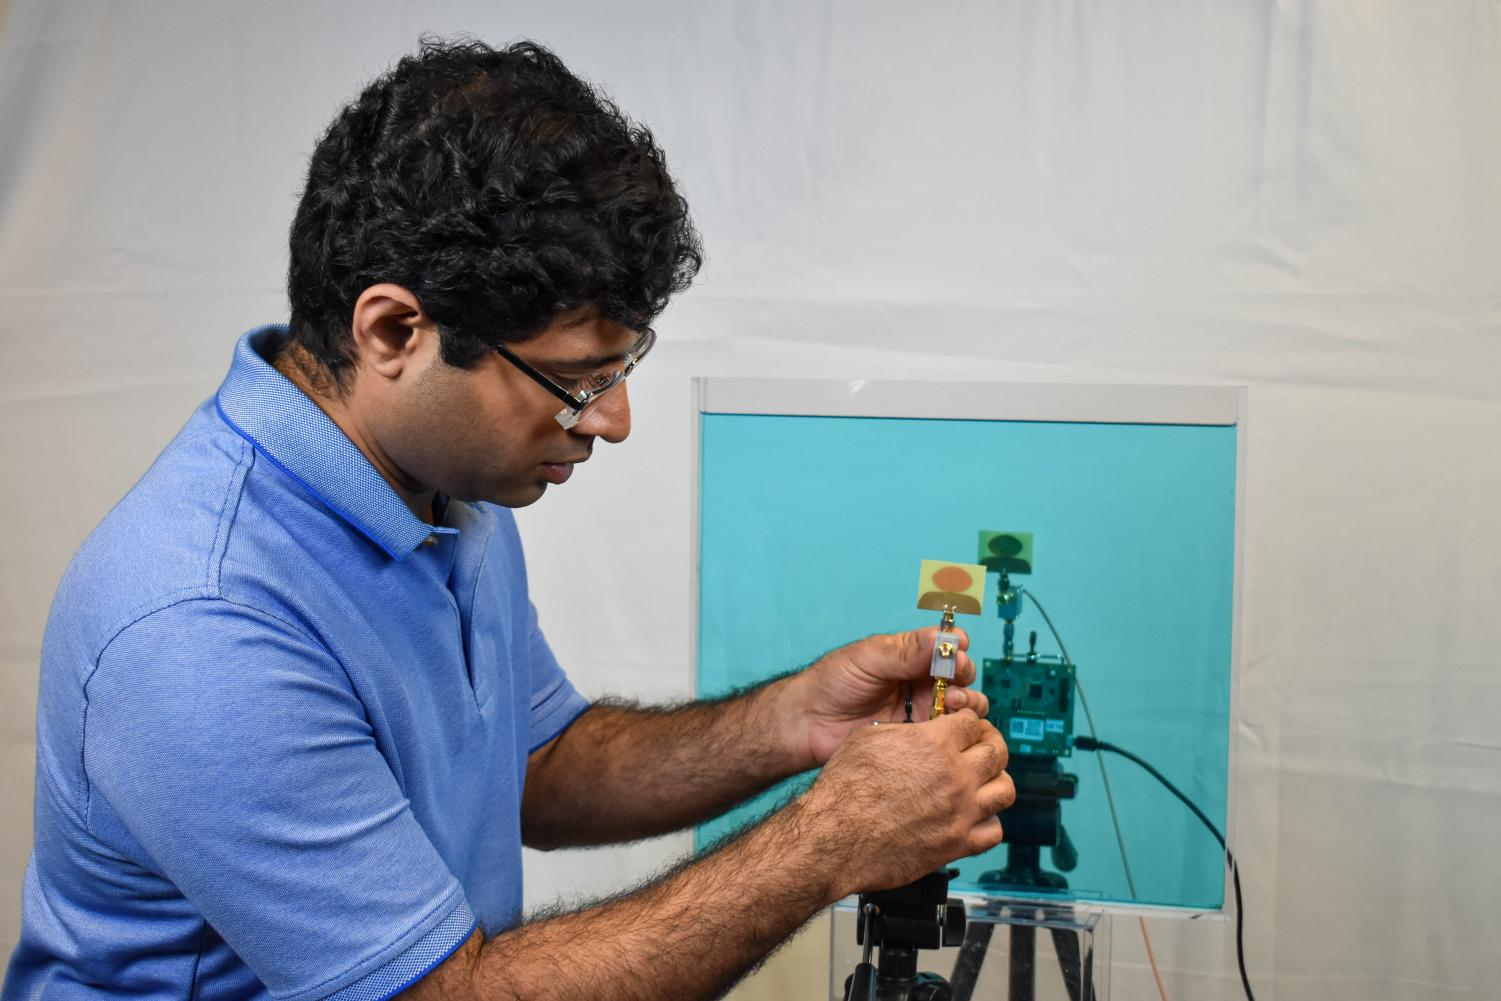 Ashutosh Dhekne, graduate student in computer science, came up with the idea of innovating a device that can identify liquids, which could be especially useful in airports. He and a team have created the device and are further developing it.